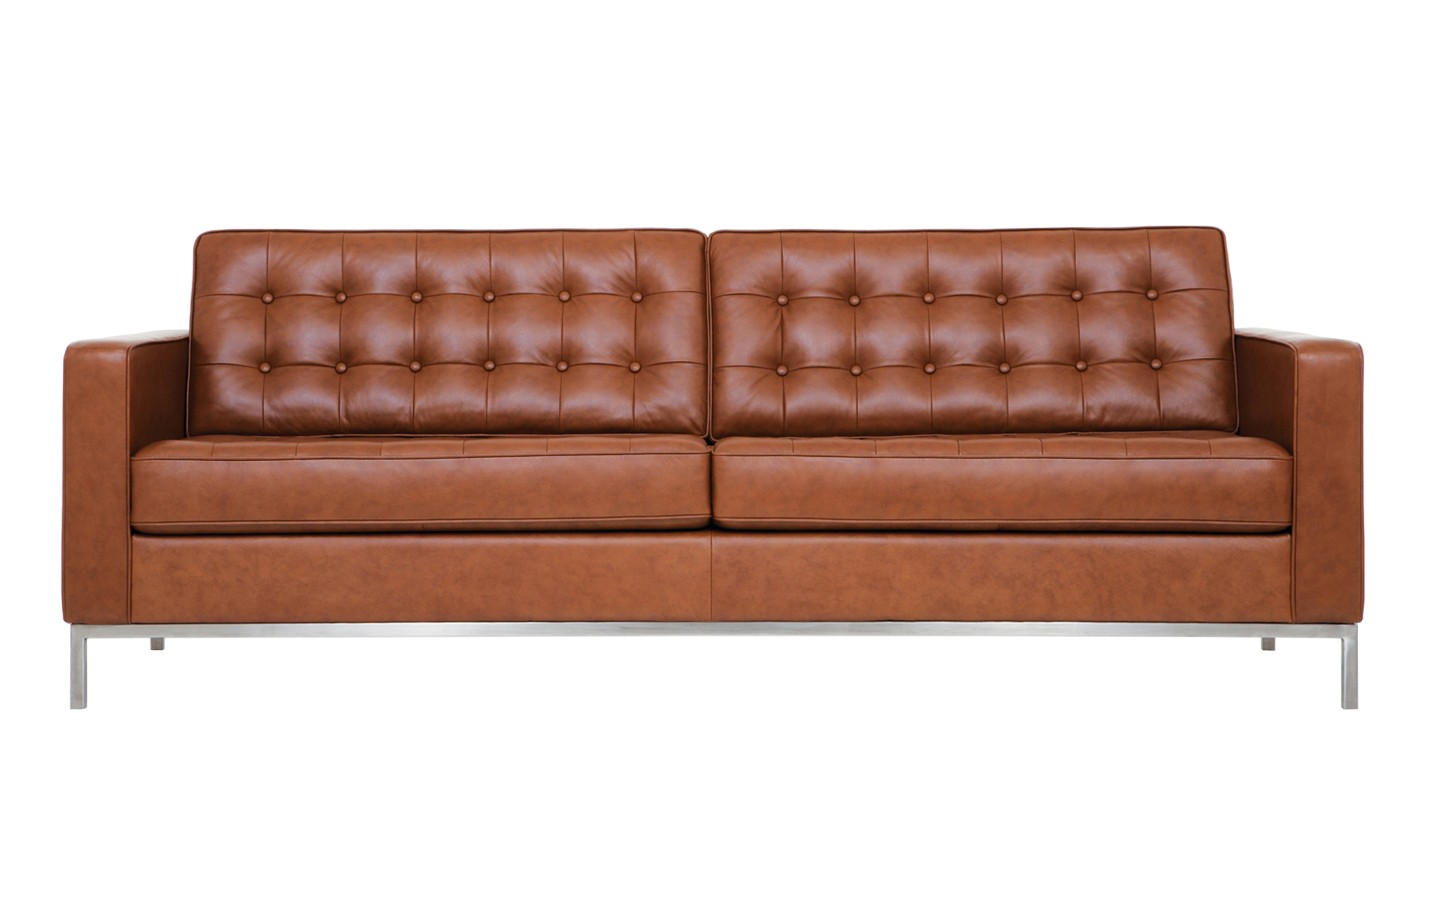 Designer Furniture Golden Gate Plaza Eq3 Reverie Leather Sofa